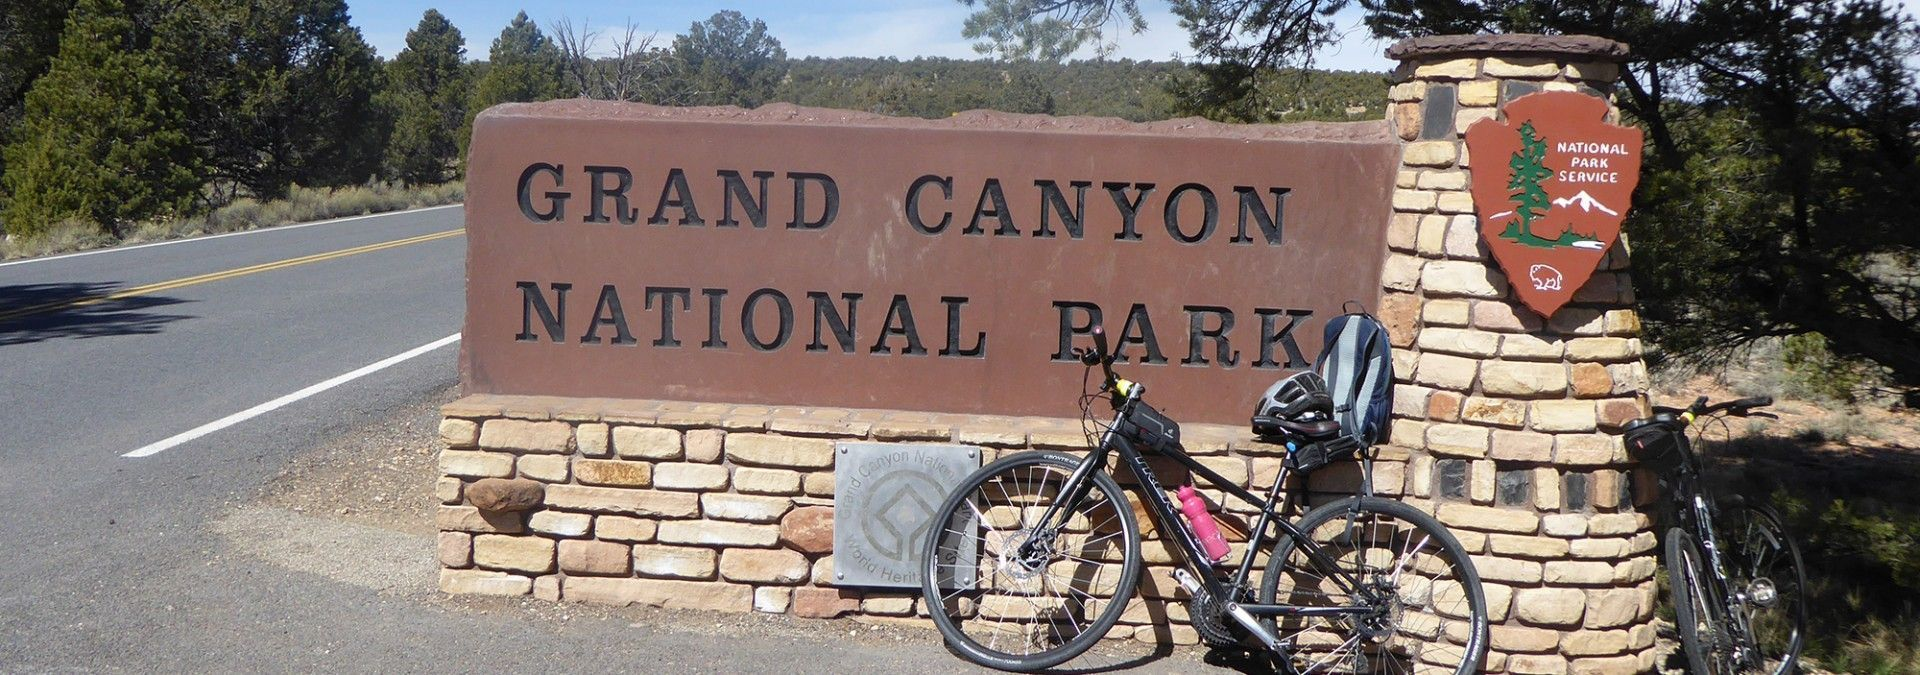 Bike_leaning_against_Grand_Canyon_National_Park_Sign.jpg